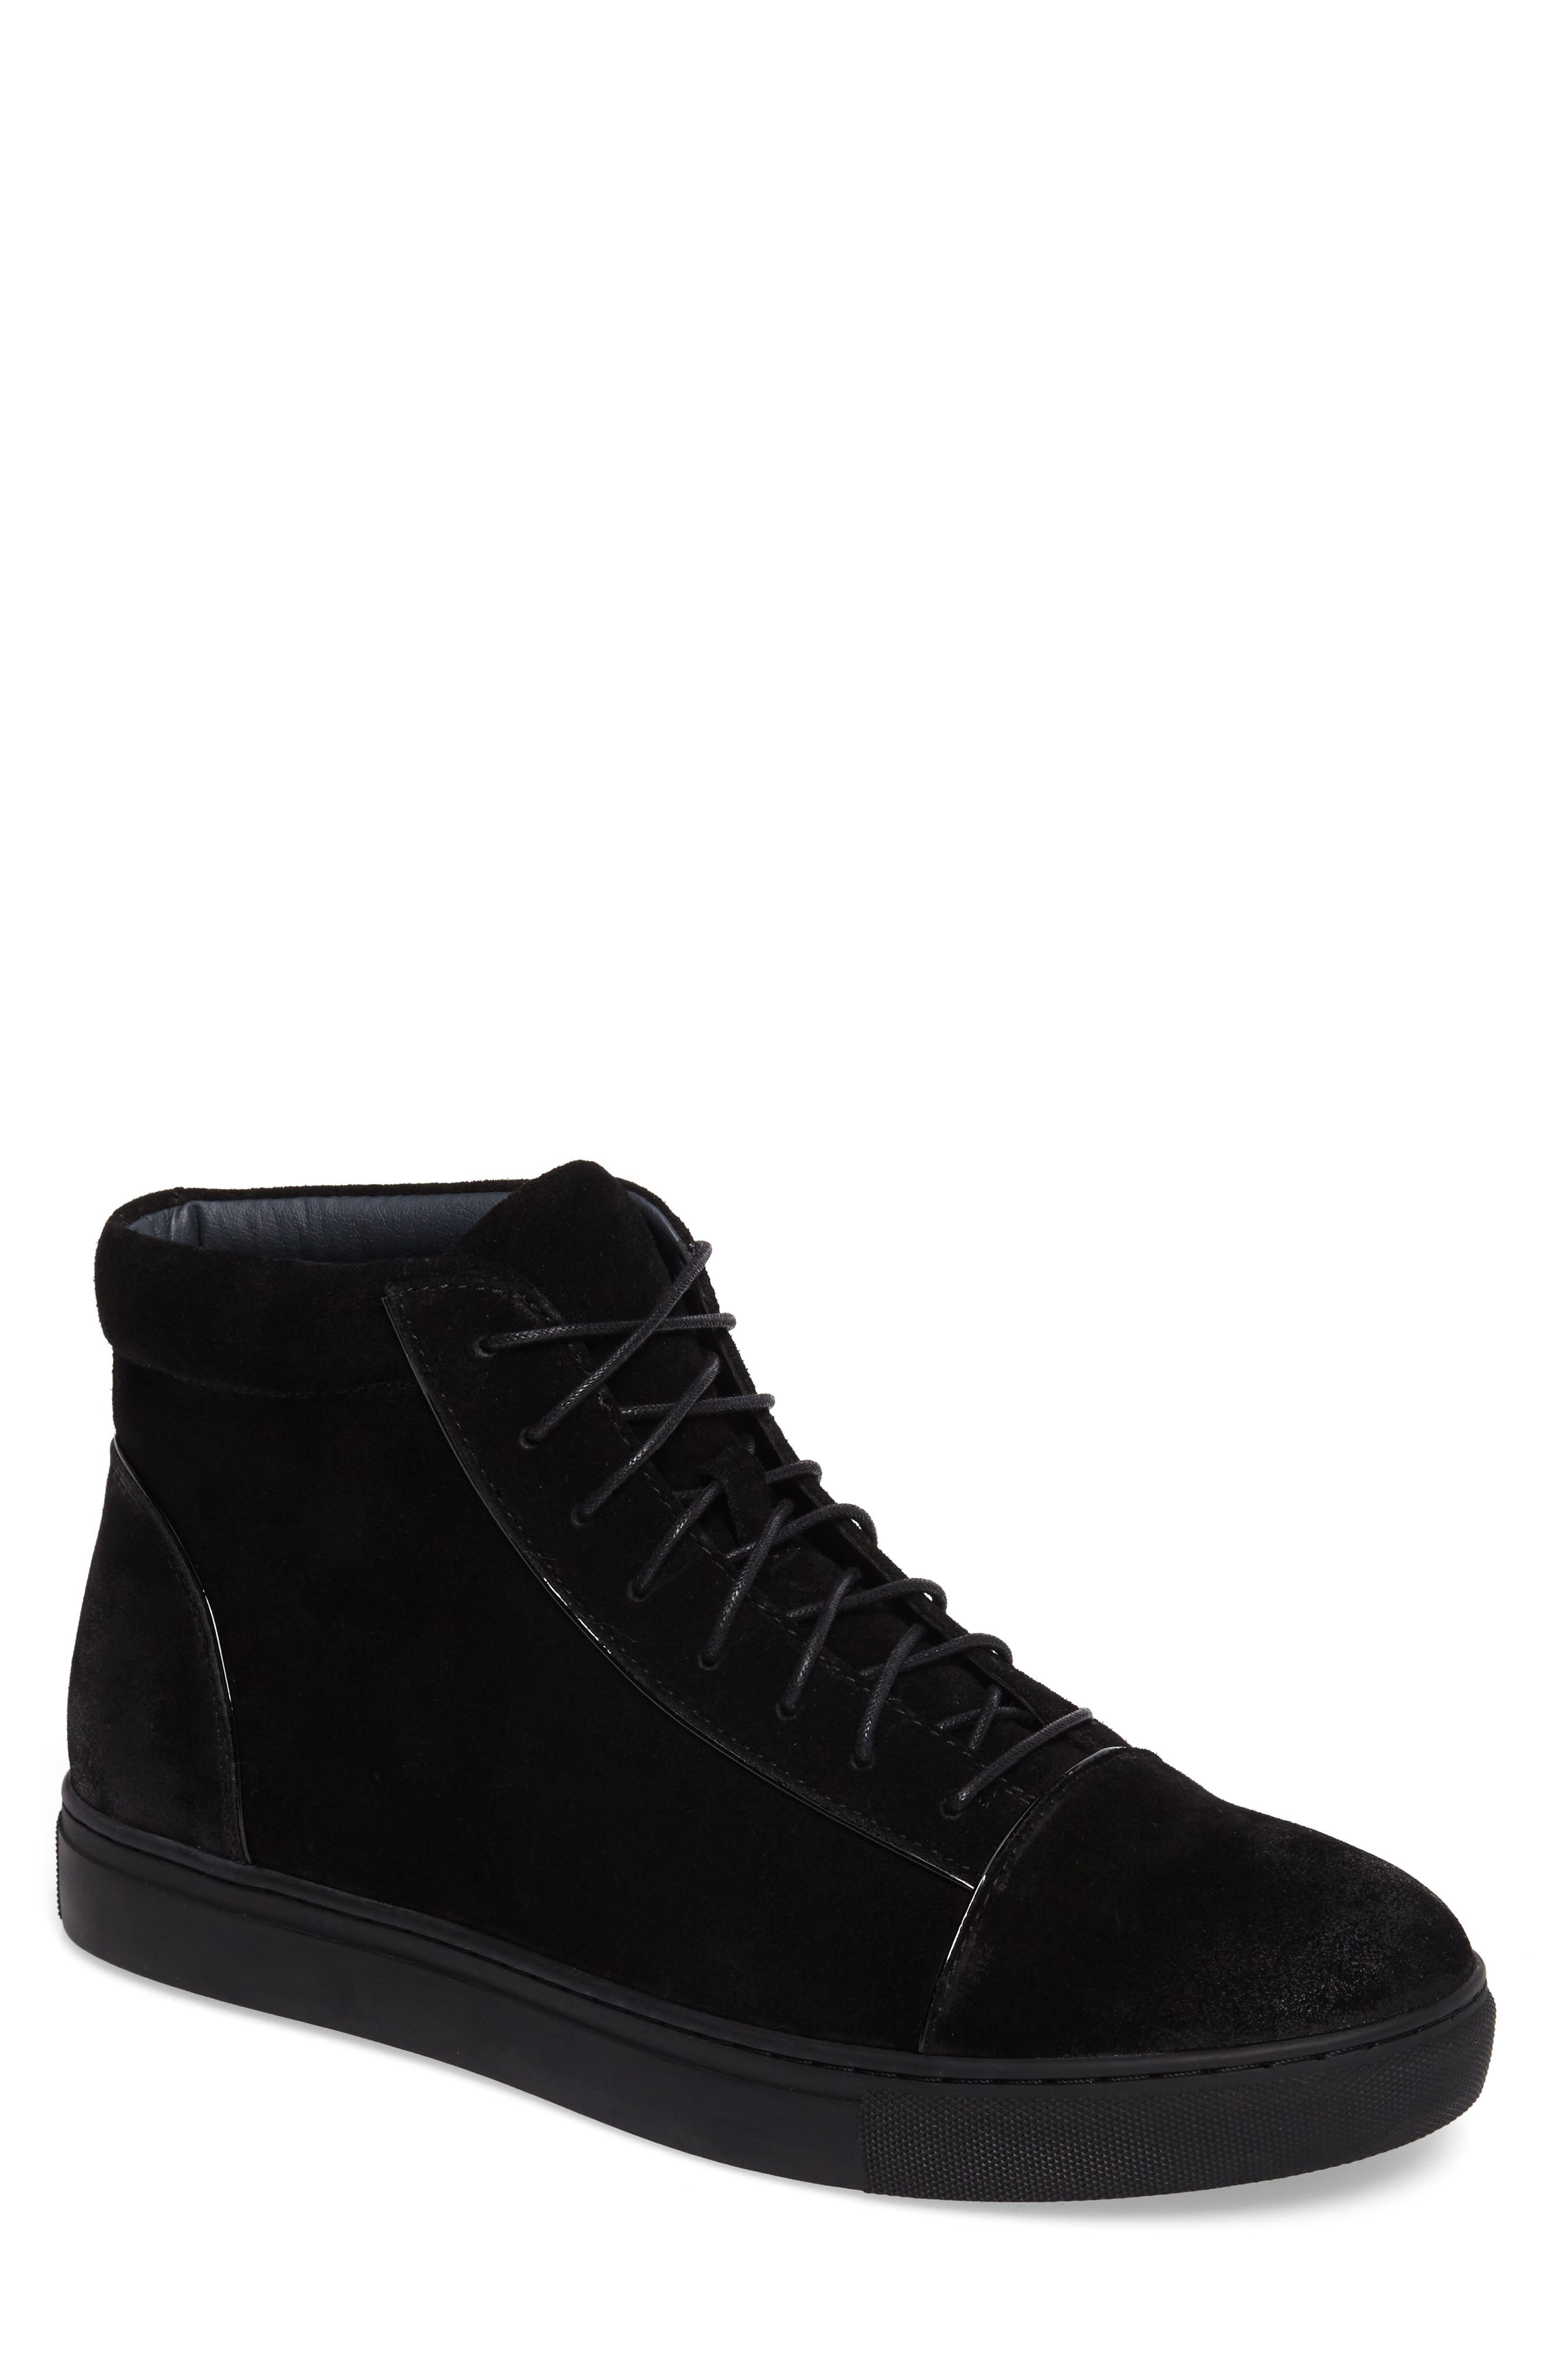 Grundy Sneaker,                         Main,                         color, 001